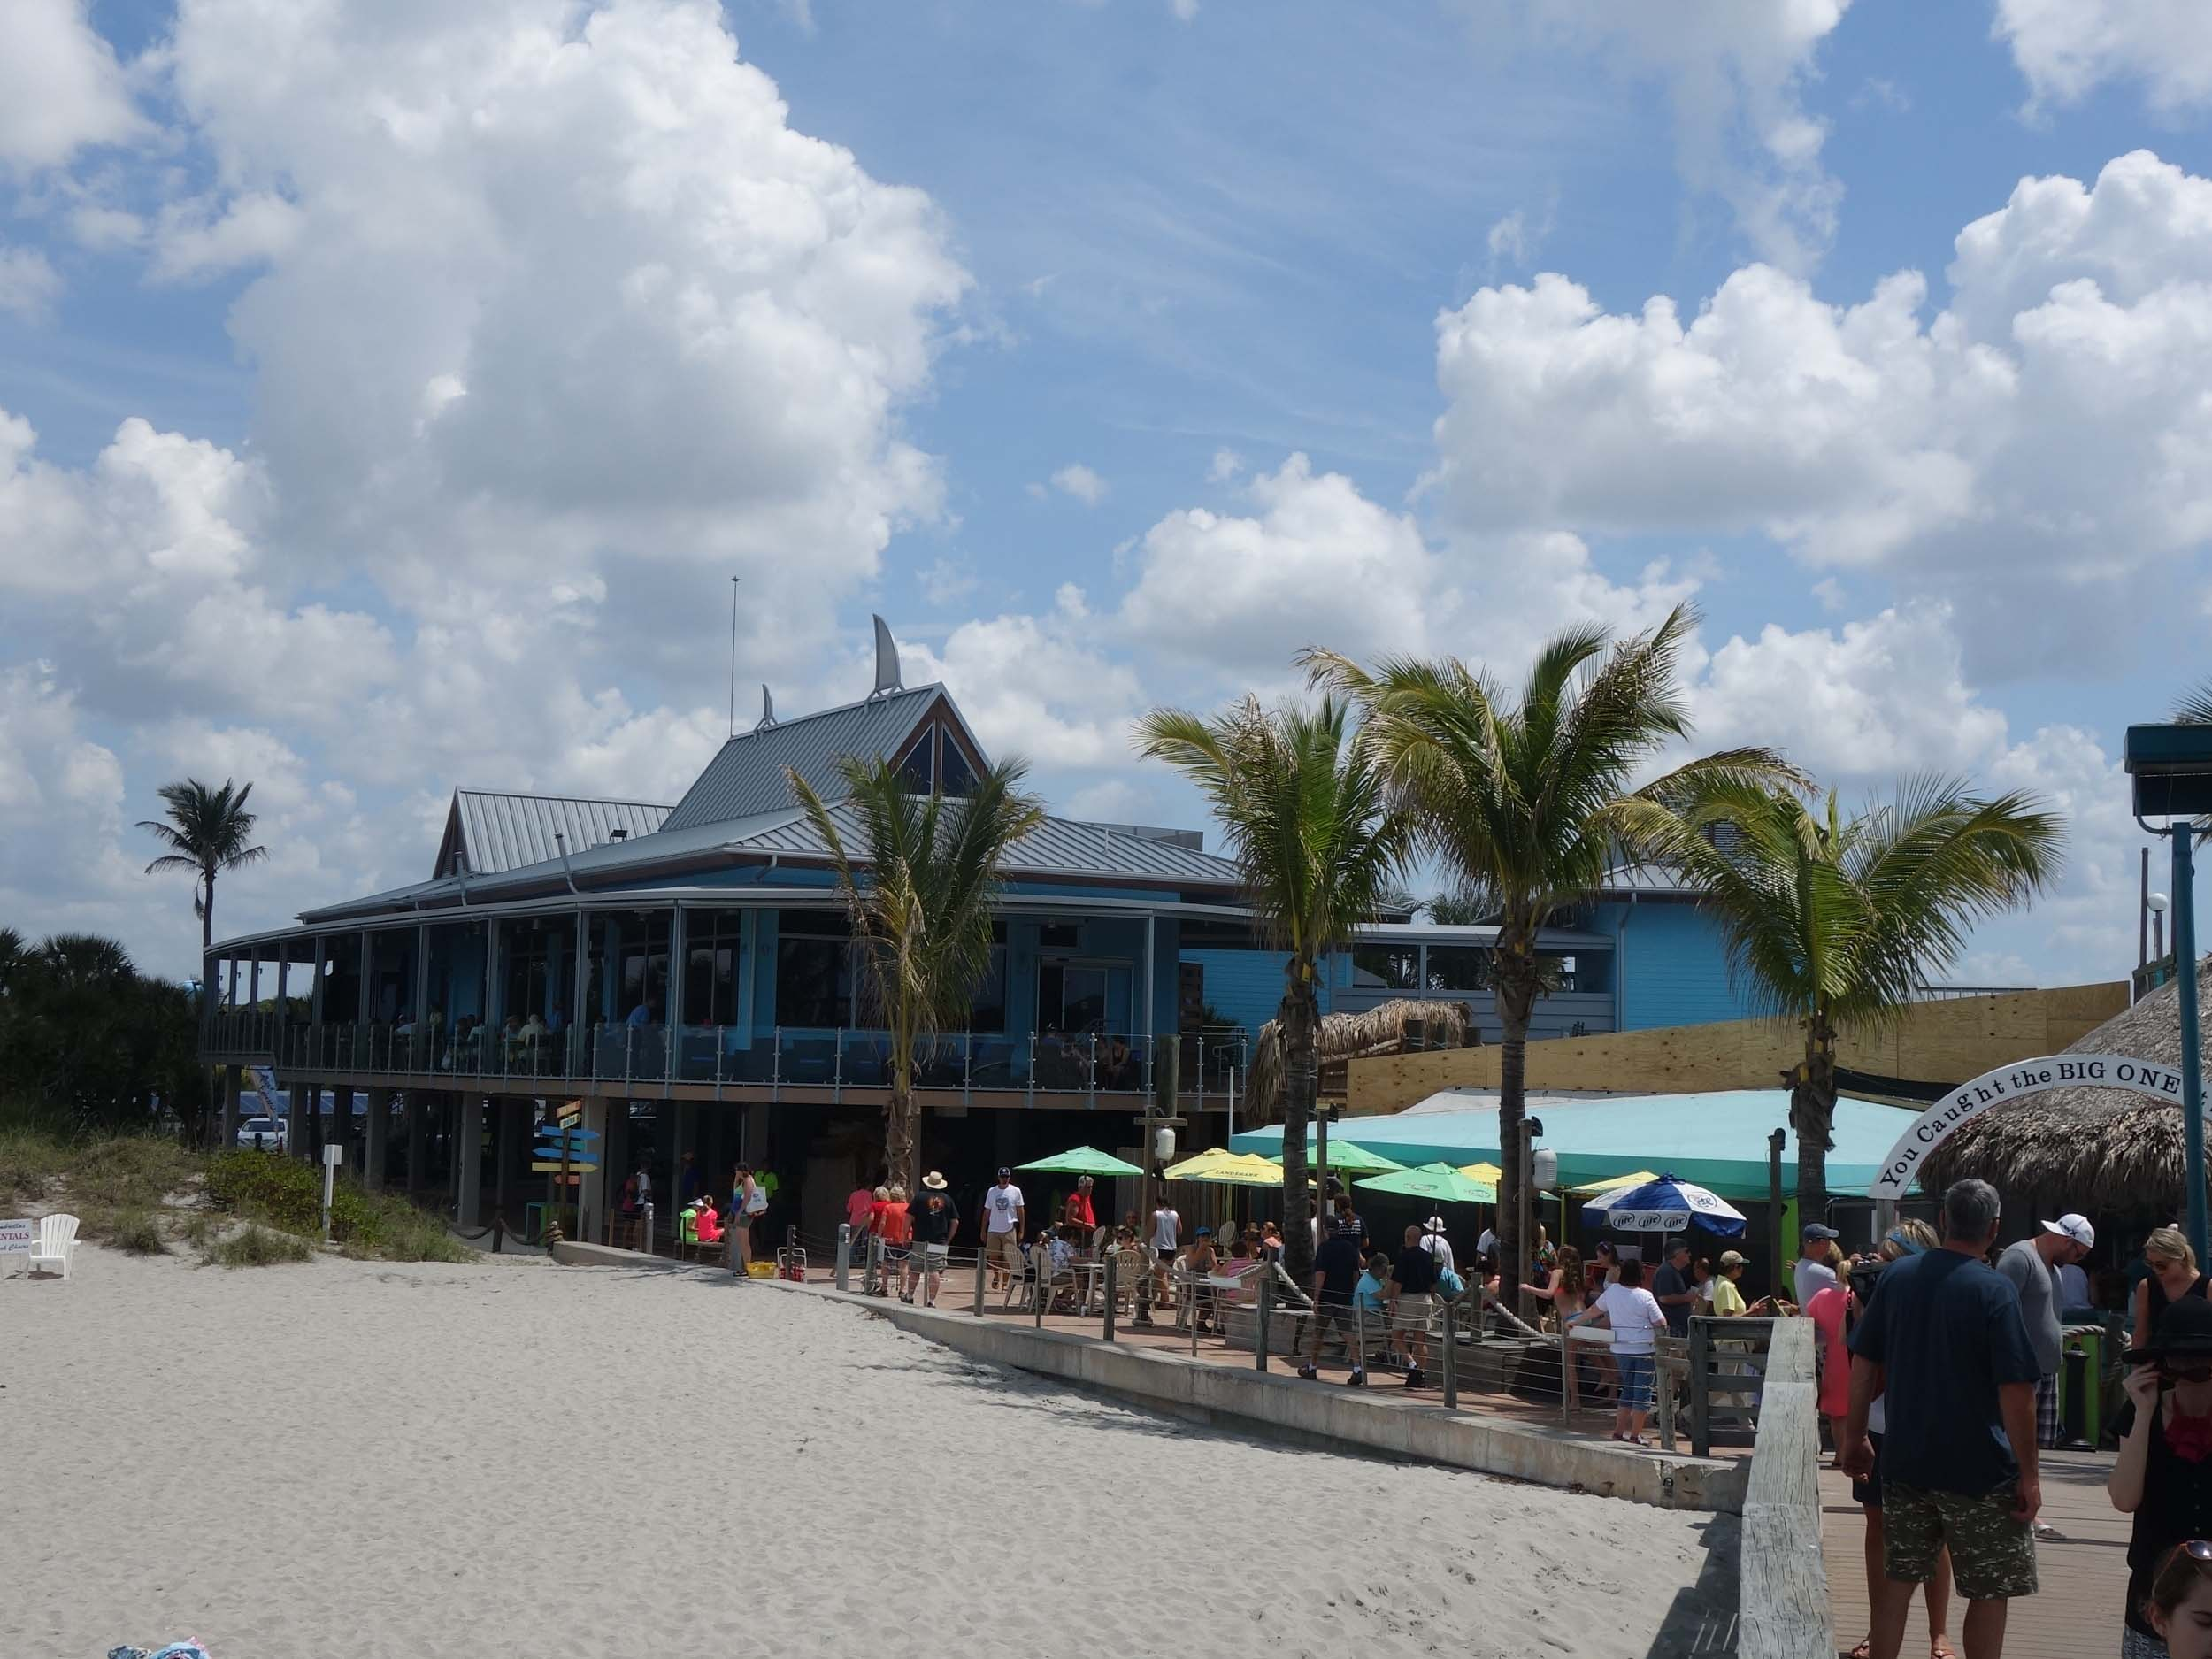 Sharky's on the pier exterior beach view